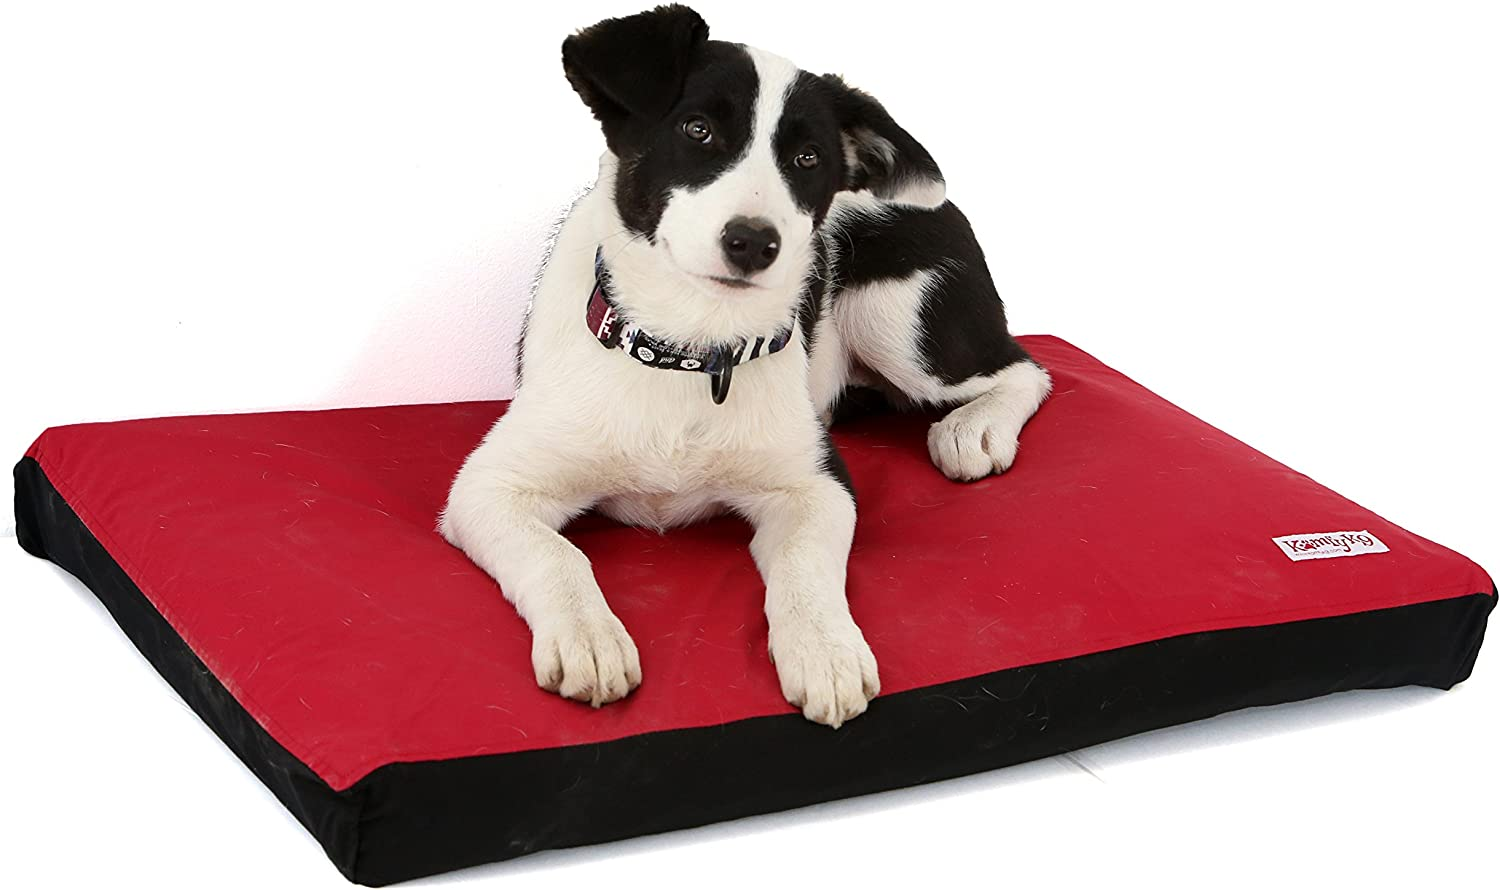 Waterproof I Odor Proof Crate Mat Easy Removable Cover – Great Outdoor Bed -Self Inflates – Carry Case For Travel